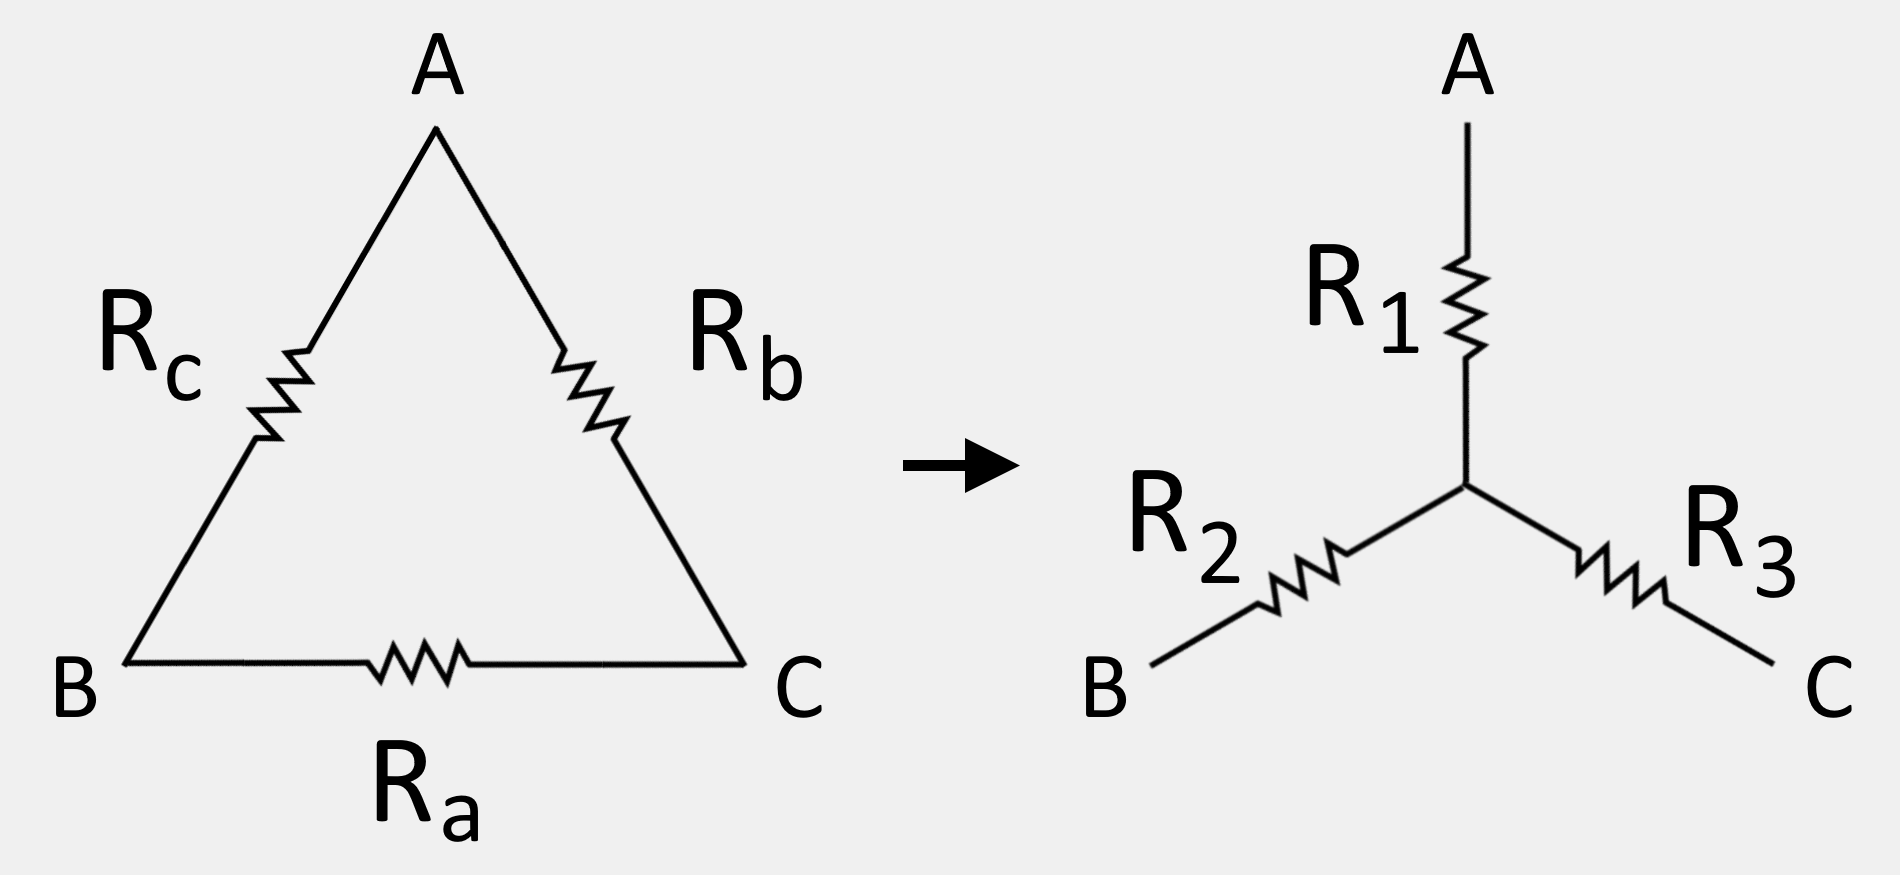 Illustration showing the diagrams of a delta network and a wye network with resistor labels.